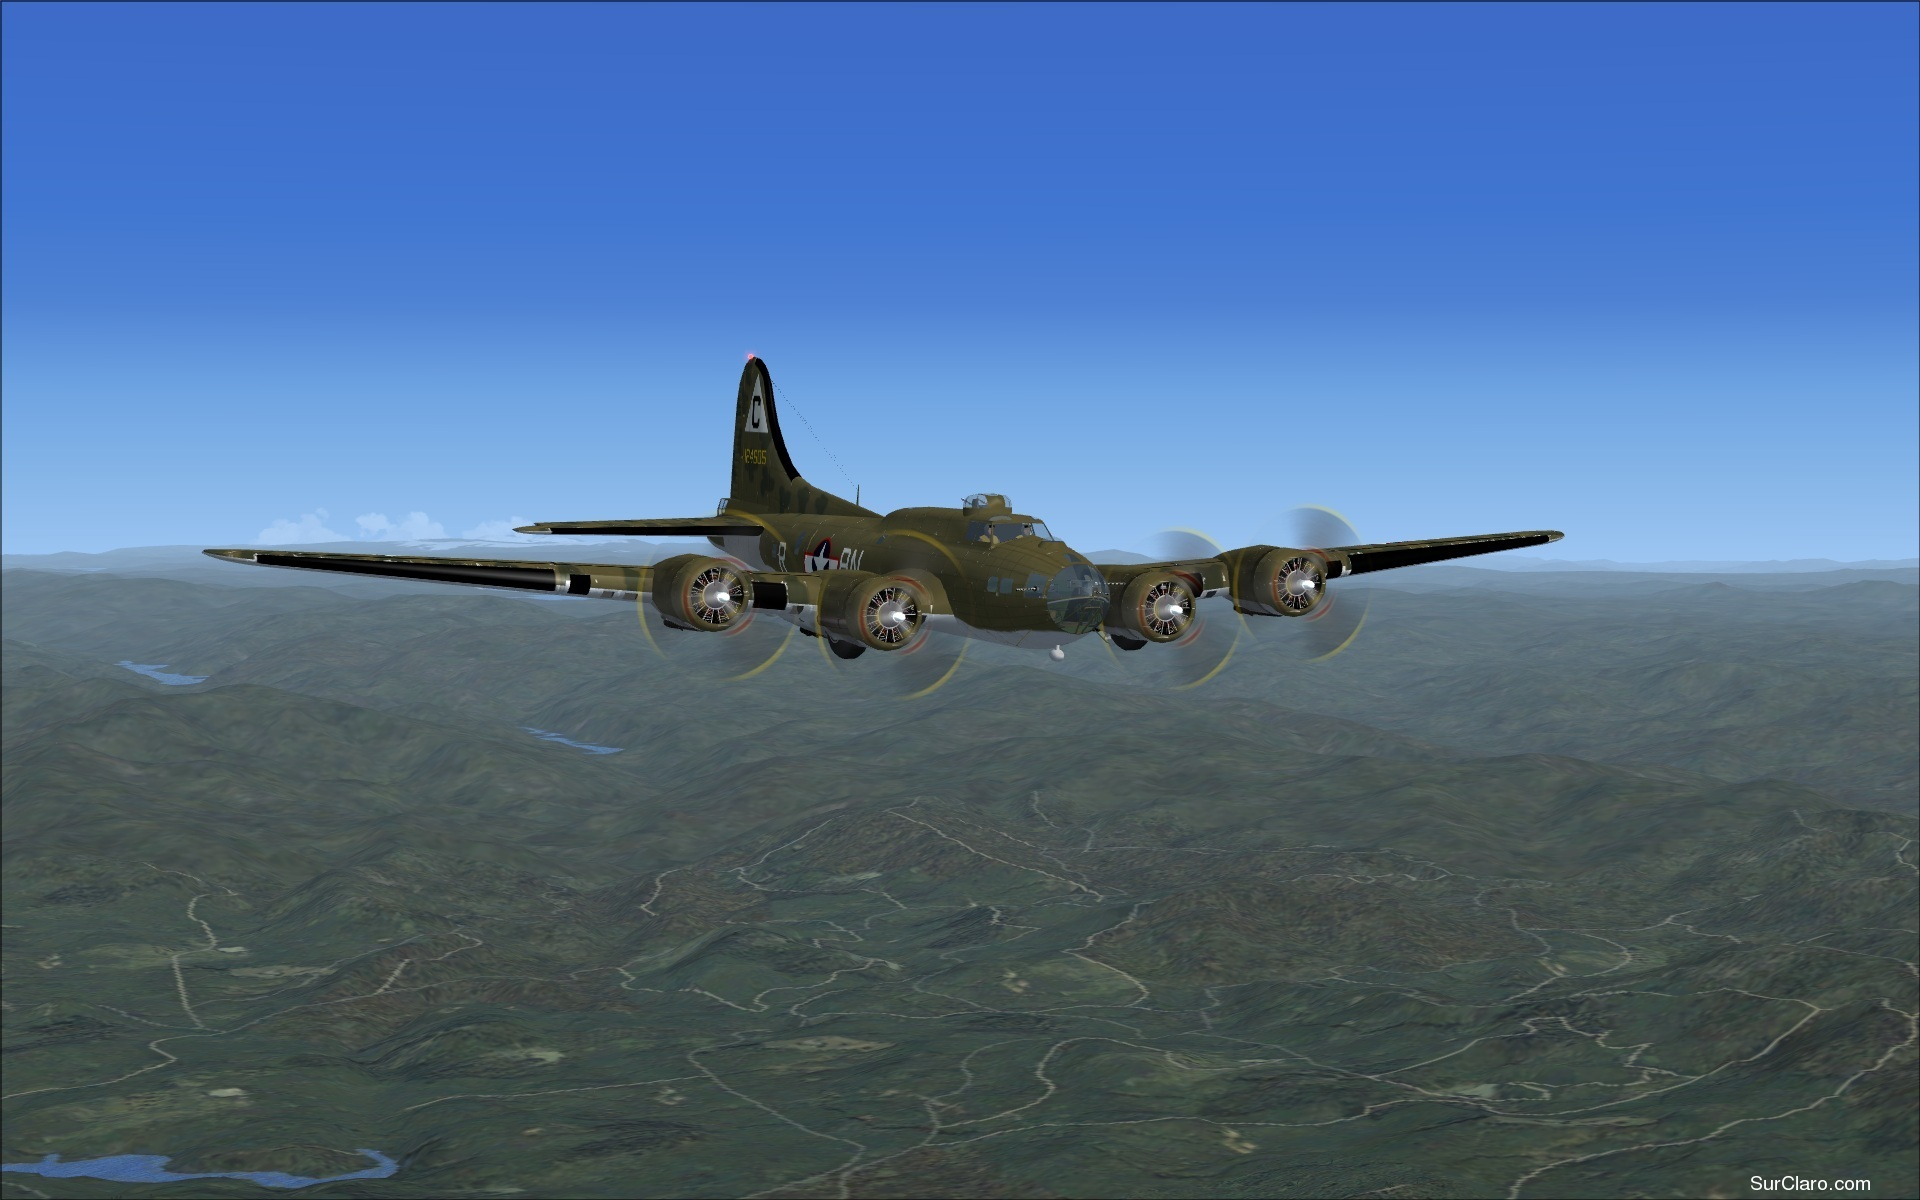 Boeing B17 Flying Fortress - Photo 18571